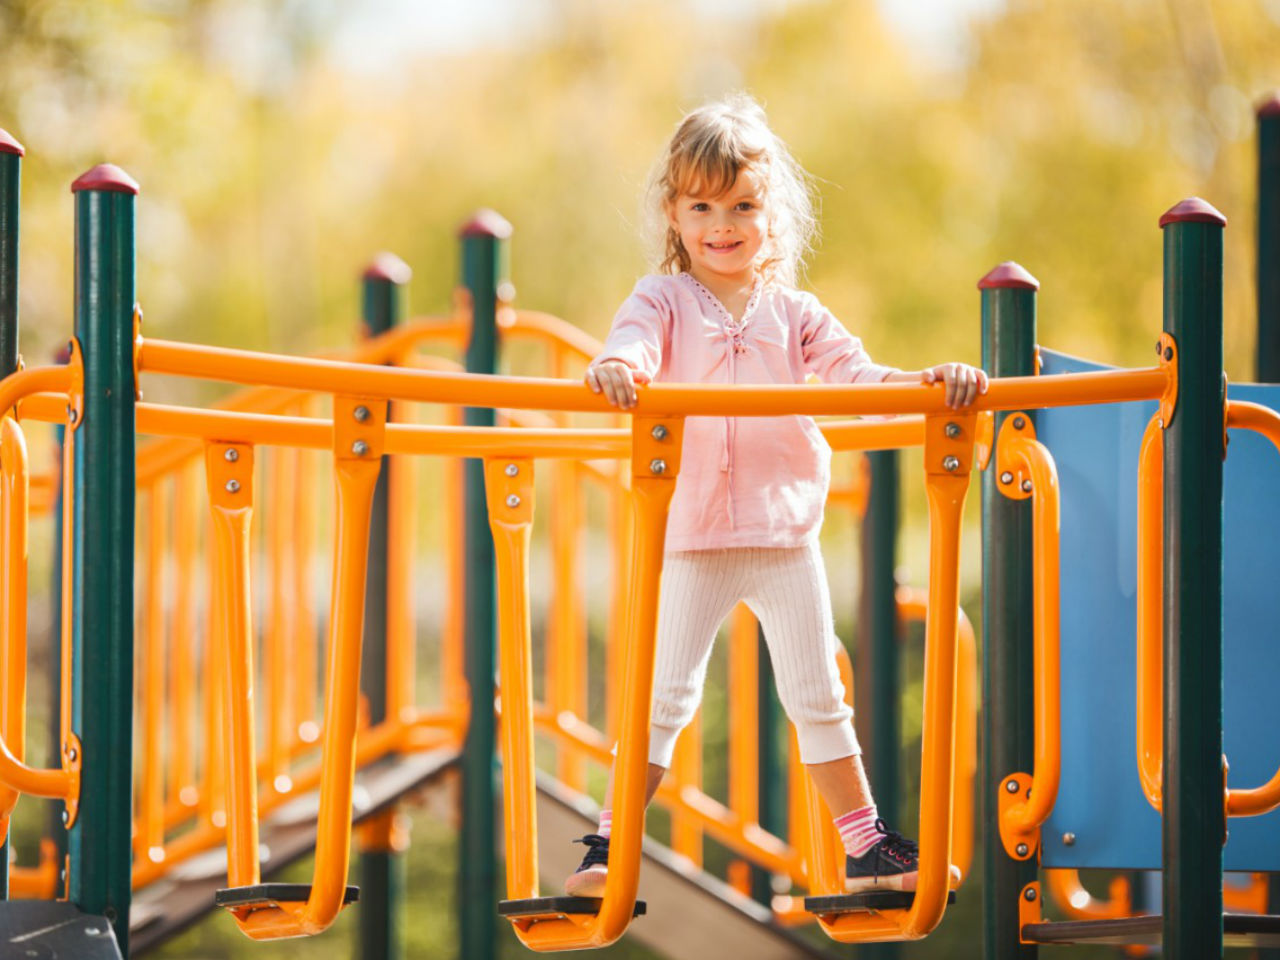 5 Fun Games To Play At The Park